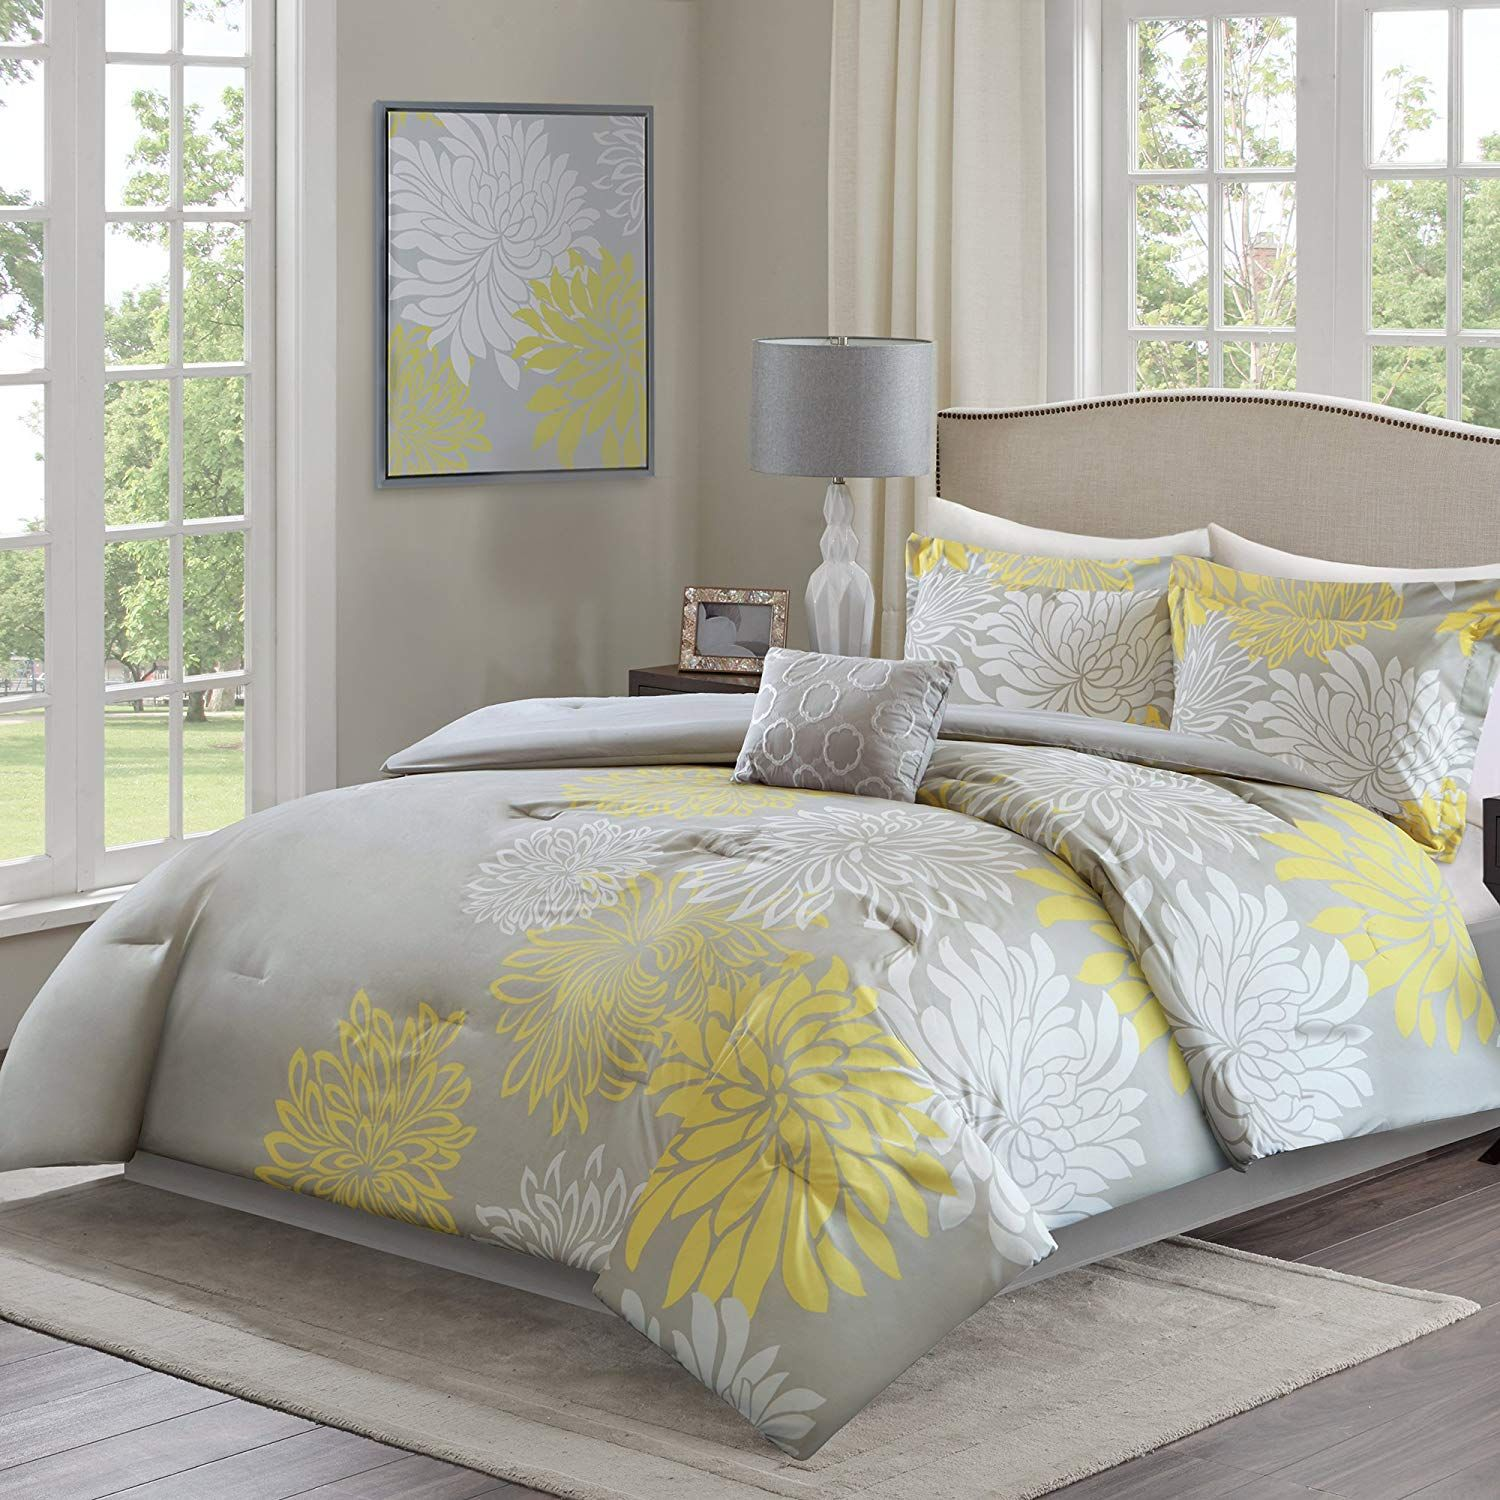 Comfort Spaces Enya Comforter Set 5 Piece Yellow Grey Floral Printed Full Queen Size Includes 1 Comforter Sets Yellow Bedding Floral Print Bedding